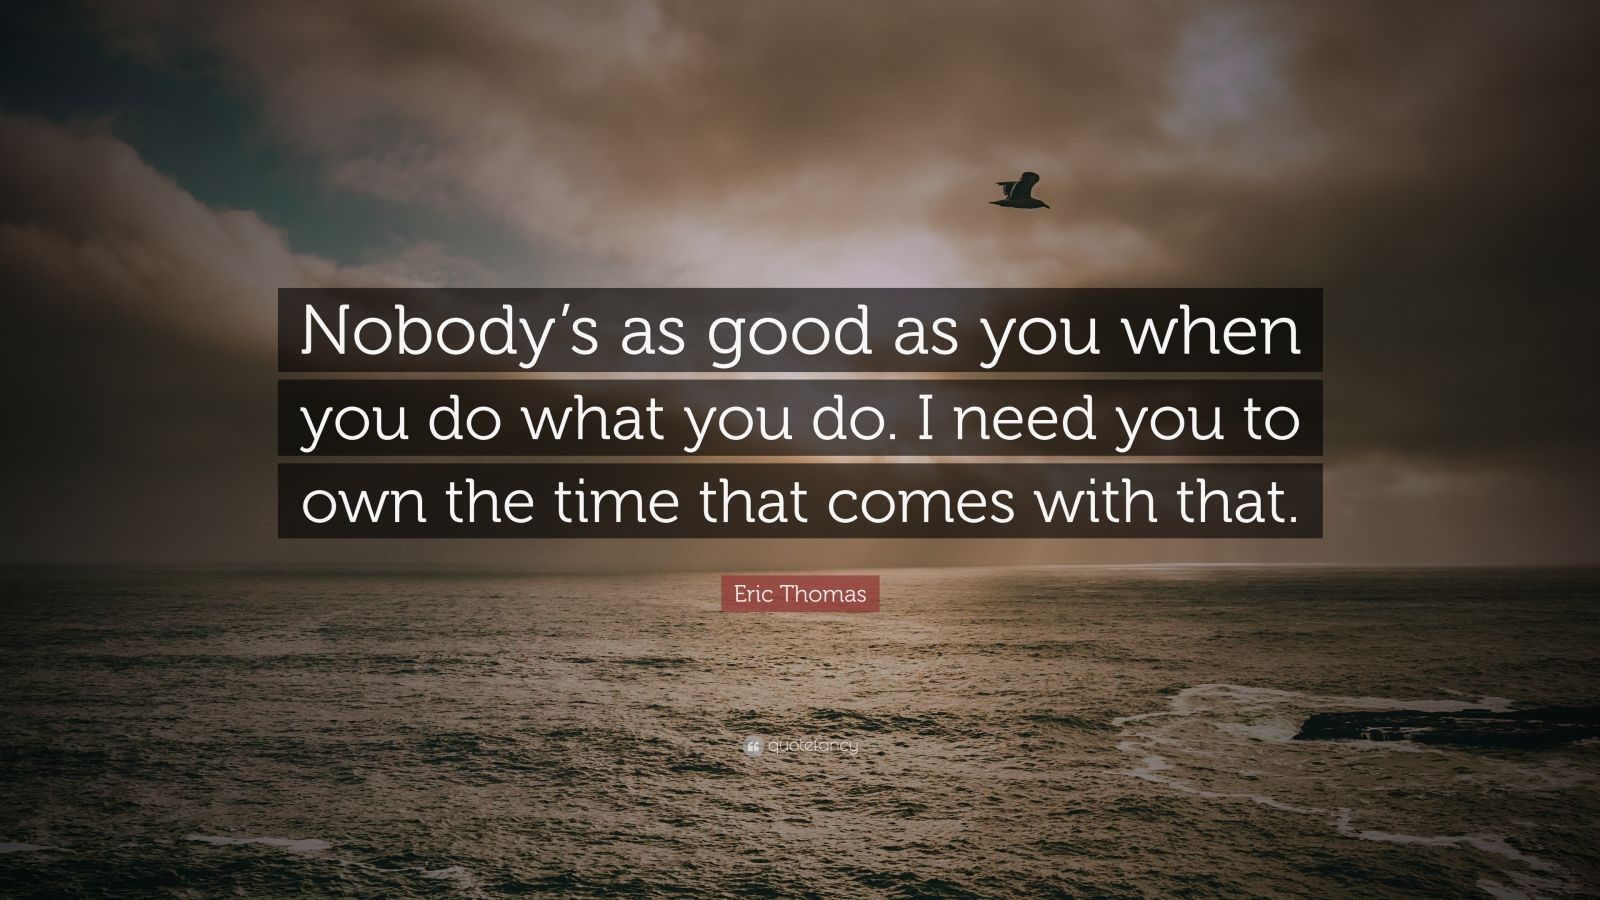 """Eric Thomas Quote: """"Nobody's as good as you when you do what you do. I need you to own the time that comes with that."""""""